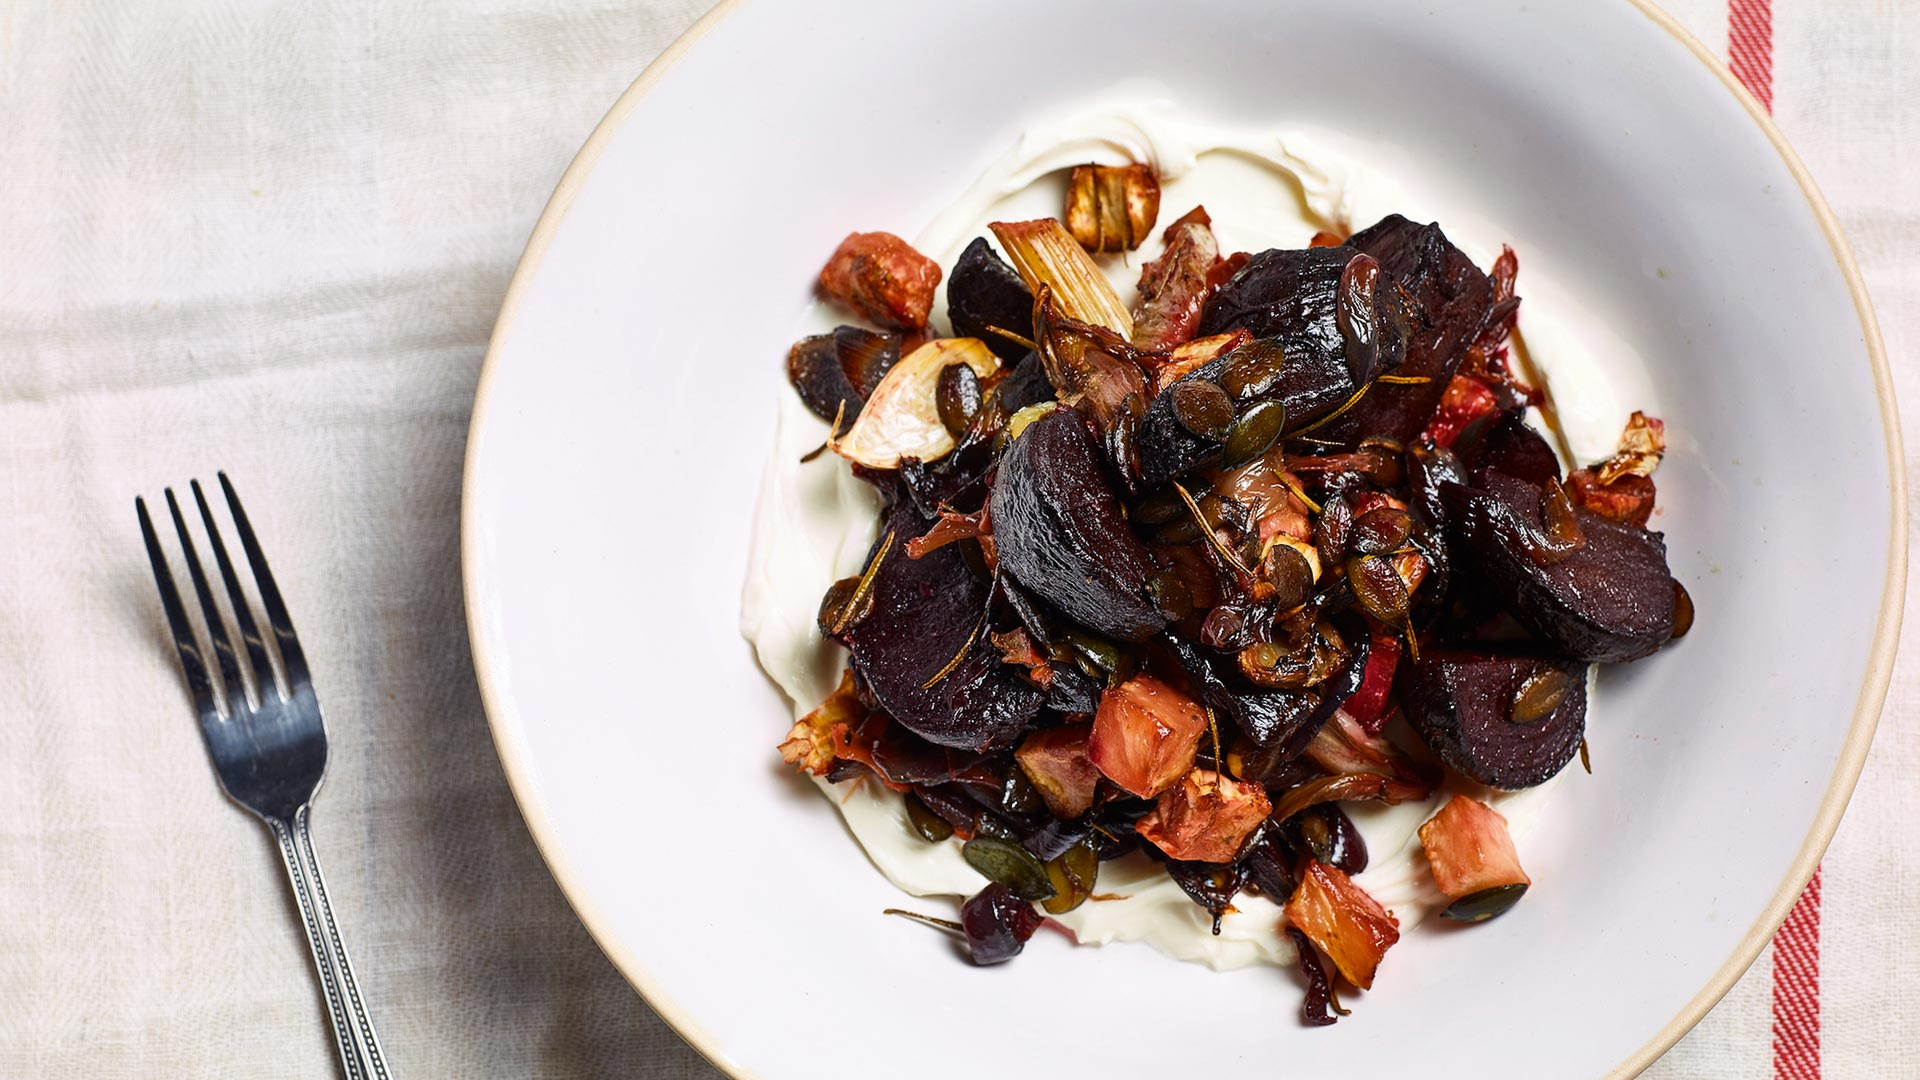 Make Gill Meller's roasted roots; Photograph by Chris Terry